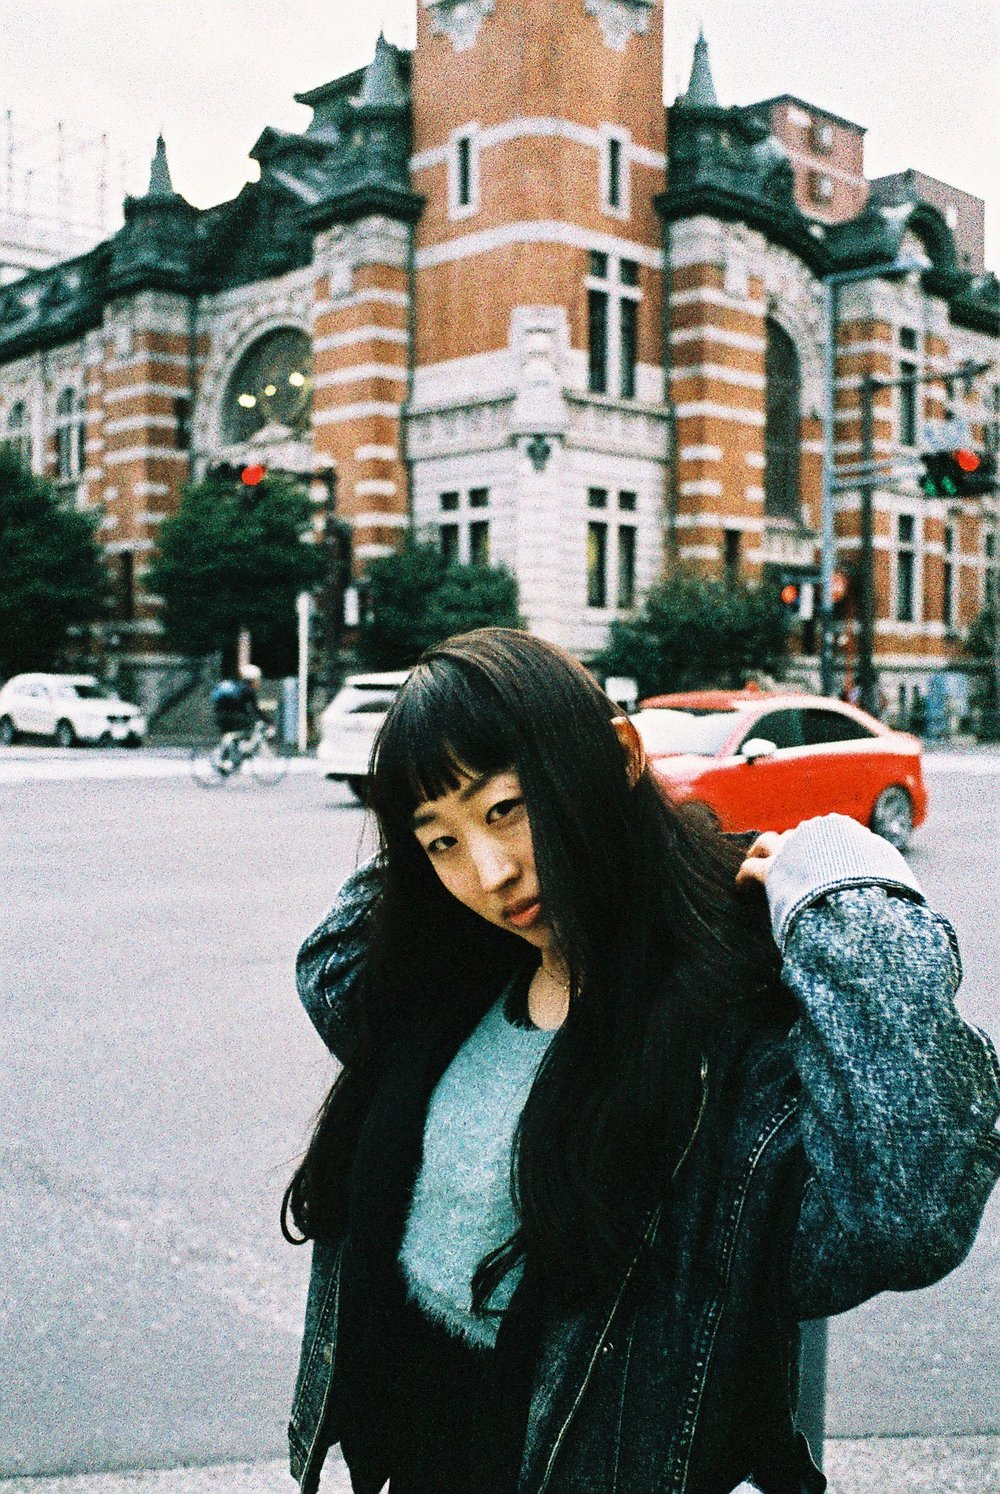 Saya - Shot on 35mm film in Yokohama